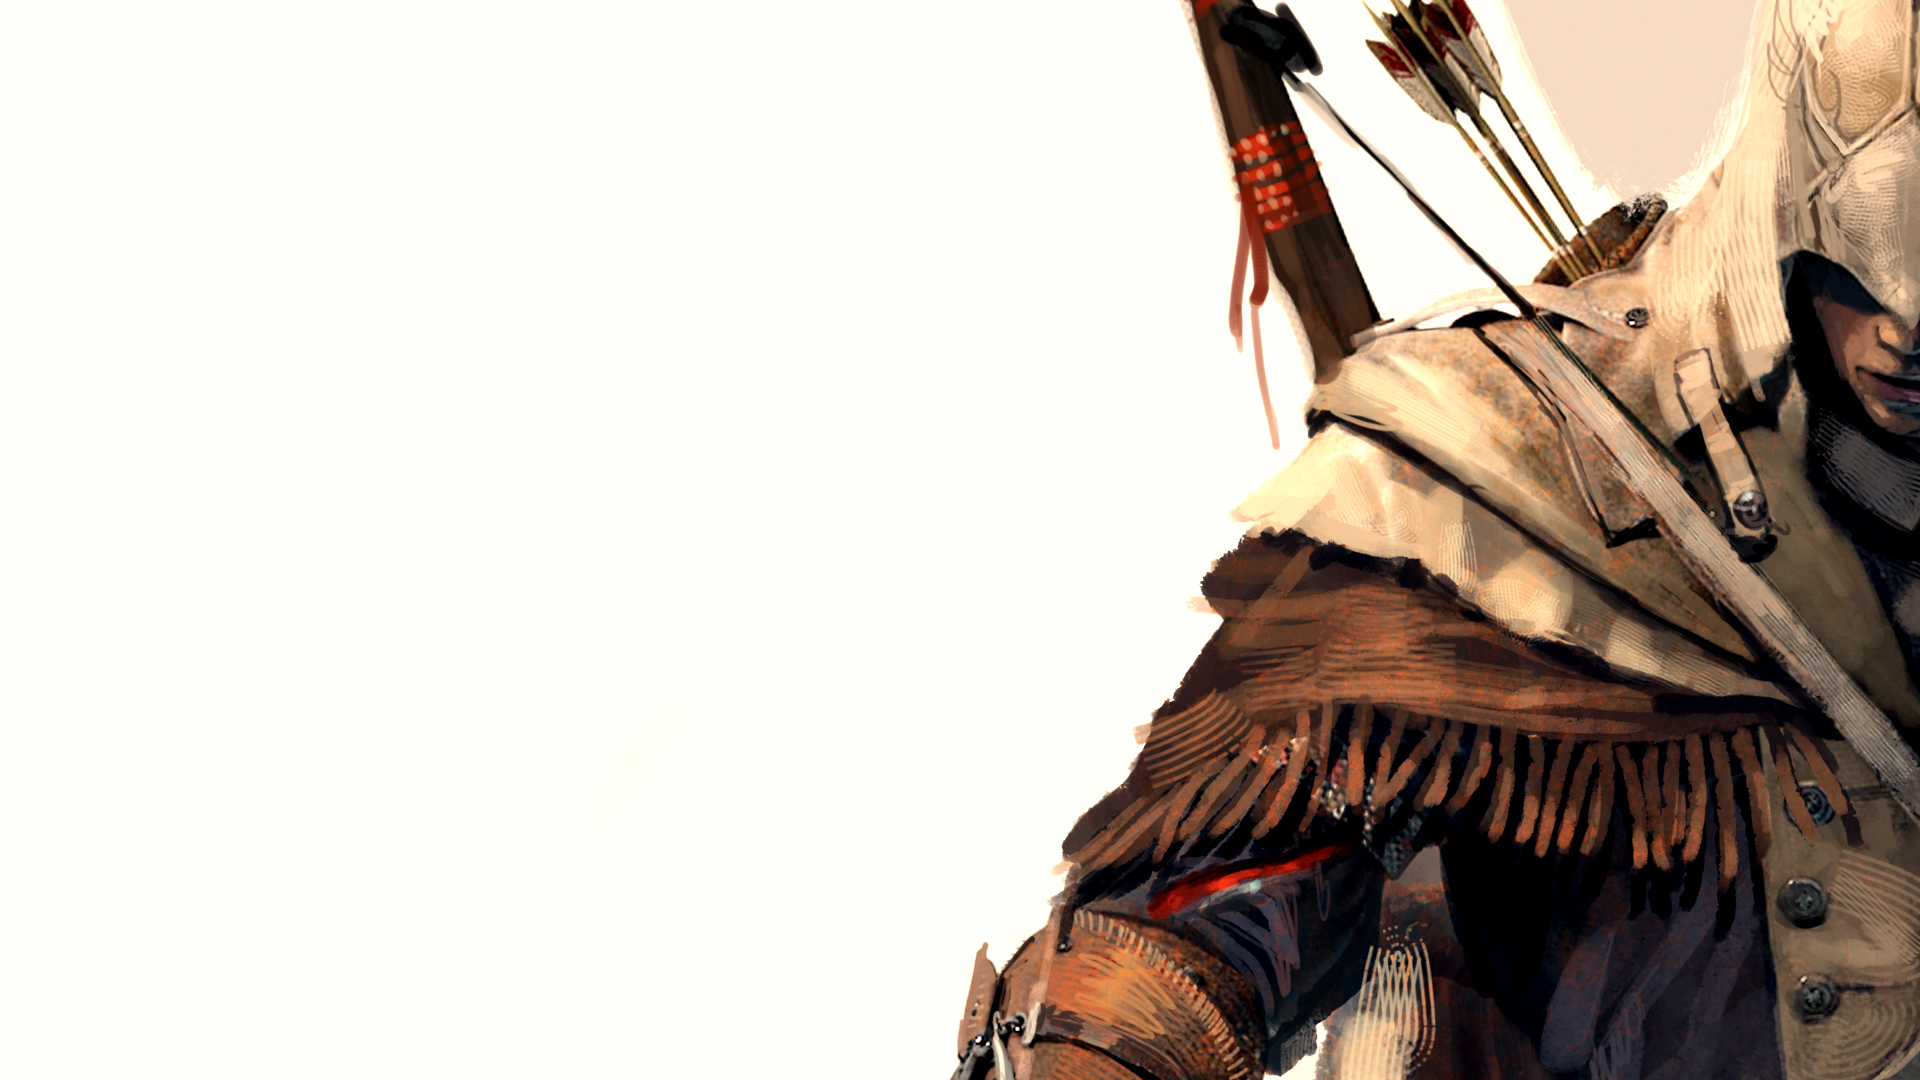 creed iii wallpaper - photo #18